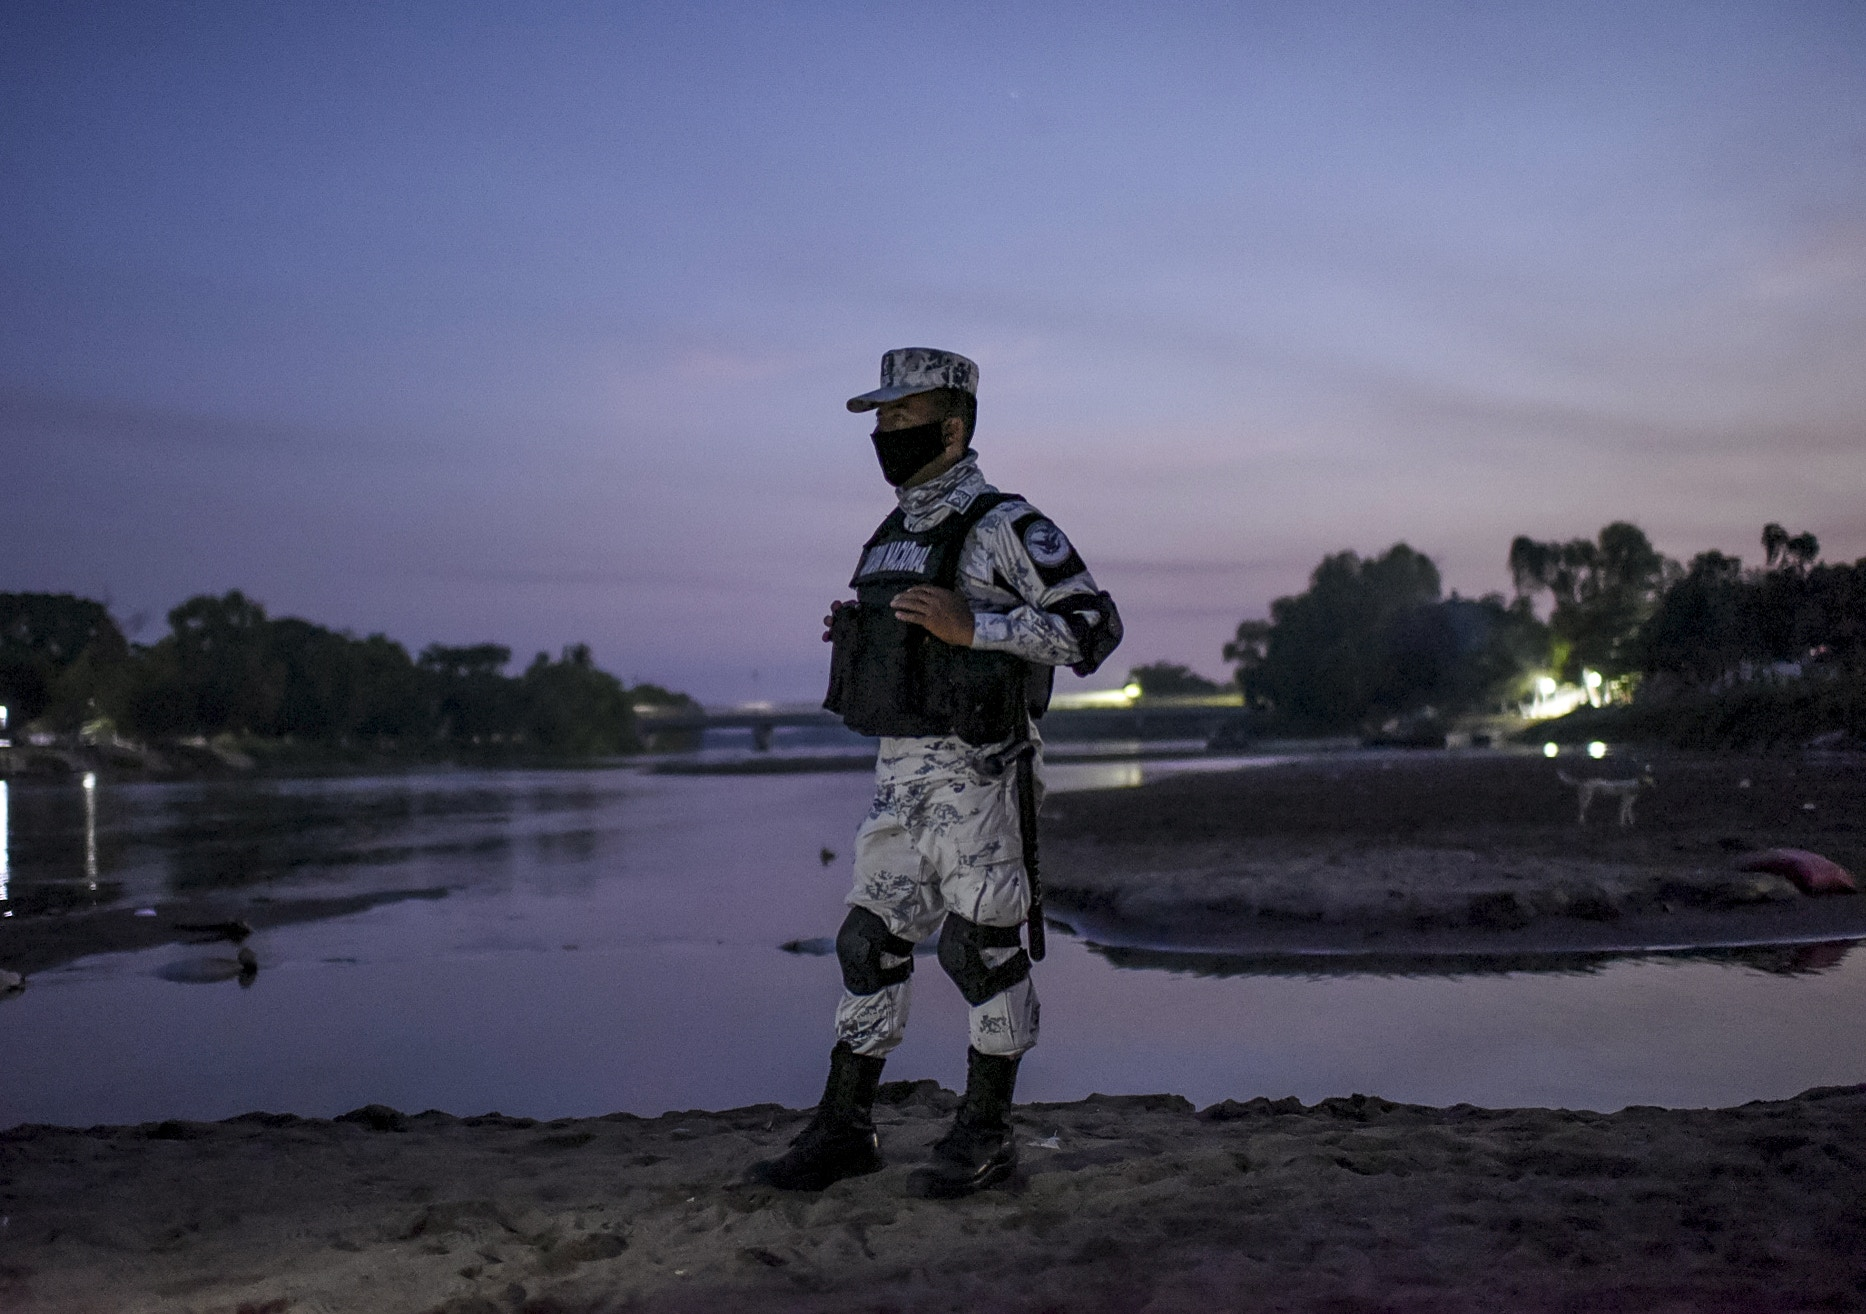 "TOPSHOT - An officer of the National Guard of Mexico stand guard at the banks of the Suchiate River in Ciudad Hidalgo, Chiapas state, Mexico, border with Tecun Uman, Guatemala, on January 19, 2021. - The Mexican government said it would not allow the ""illegal entry"" of any migrant caravans and has deployed 500 immigration officers to the border states of Chiapas and Tabasco. (Photo by Isaac GUZMAN / AFP) (Photo by ISAAC GUZMAN/AFP via Getty Images)"